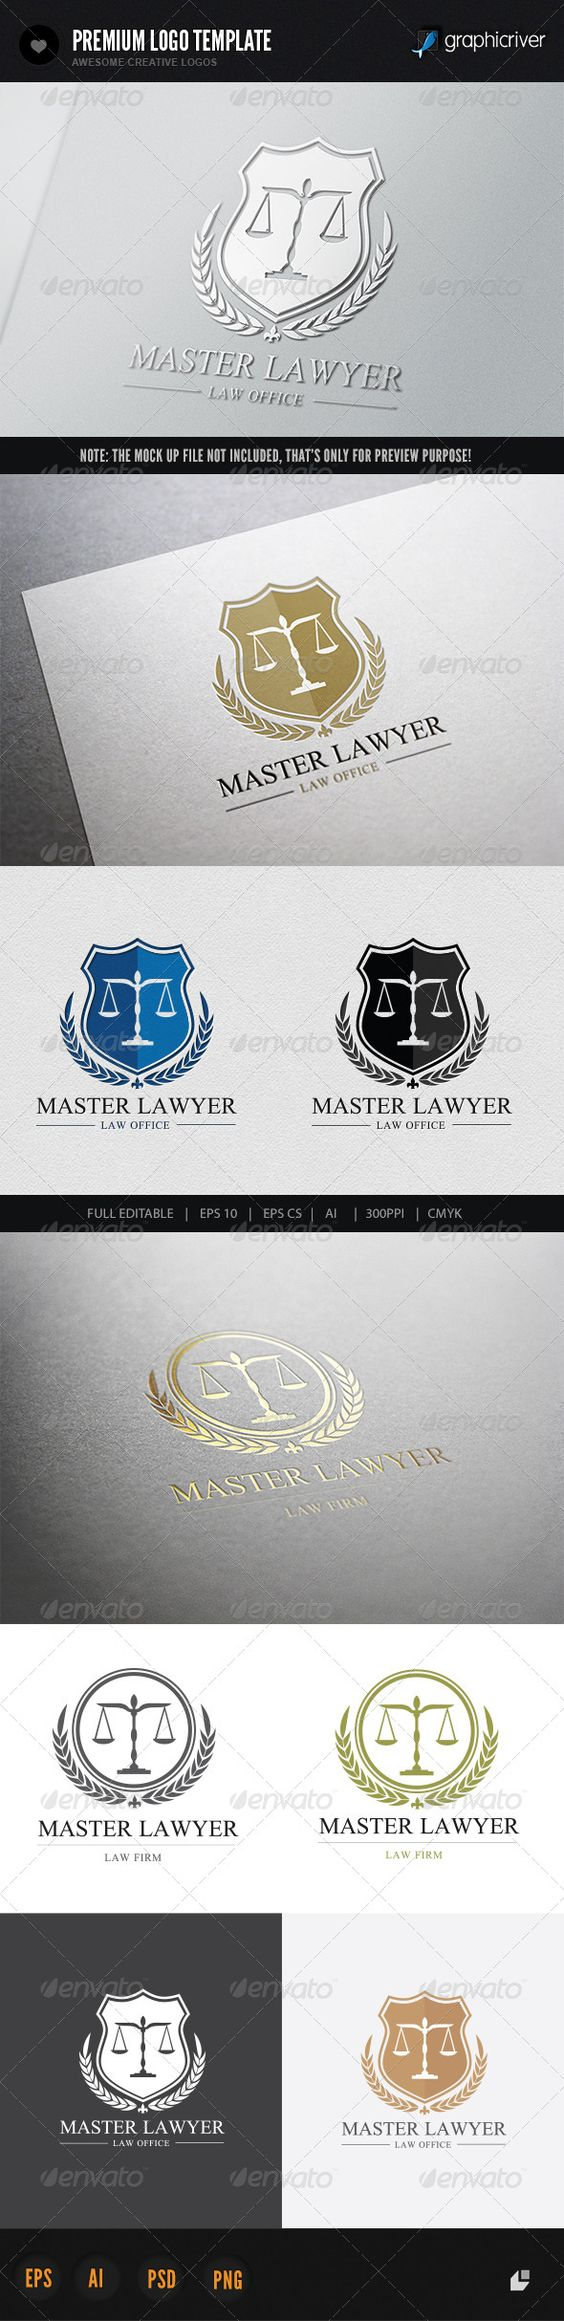 Law Firm V1 Adobe Creative and Logo design